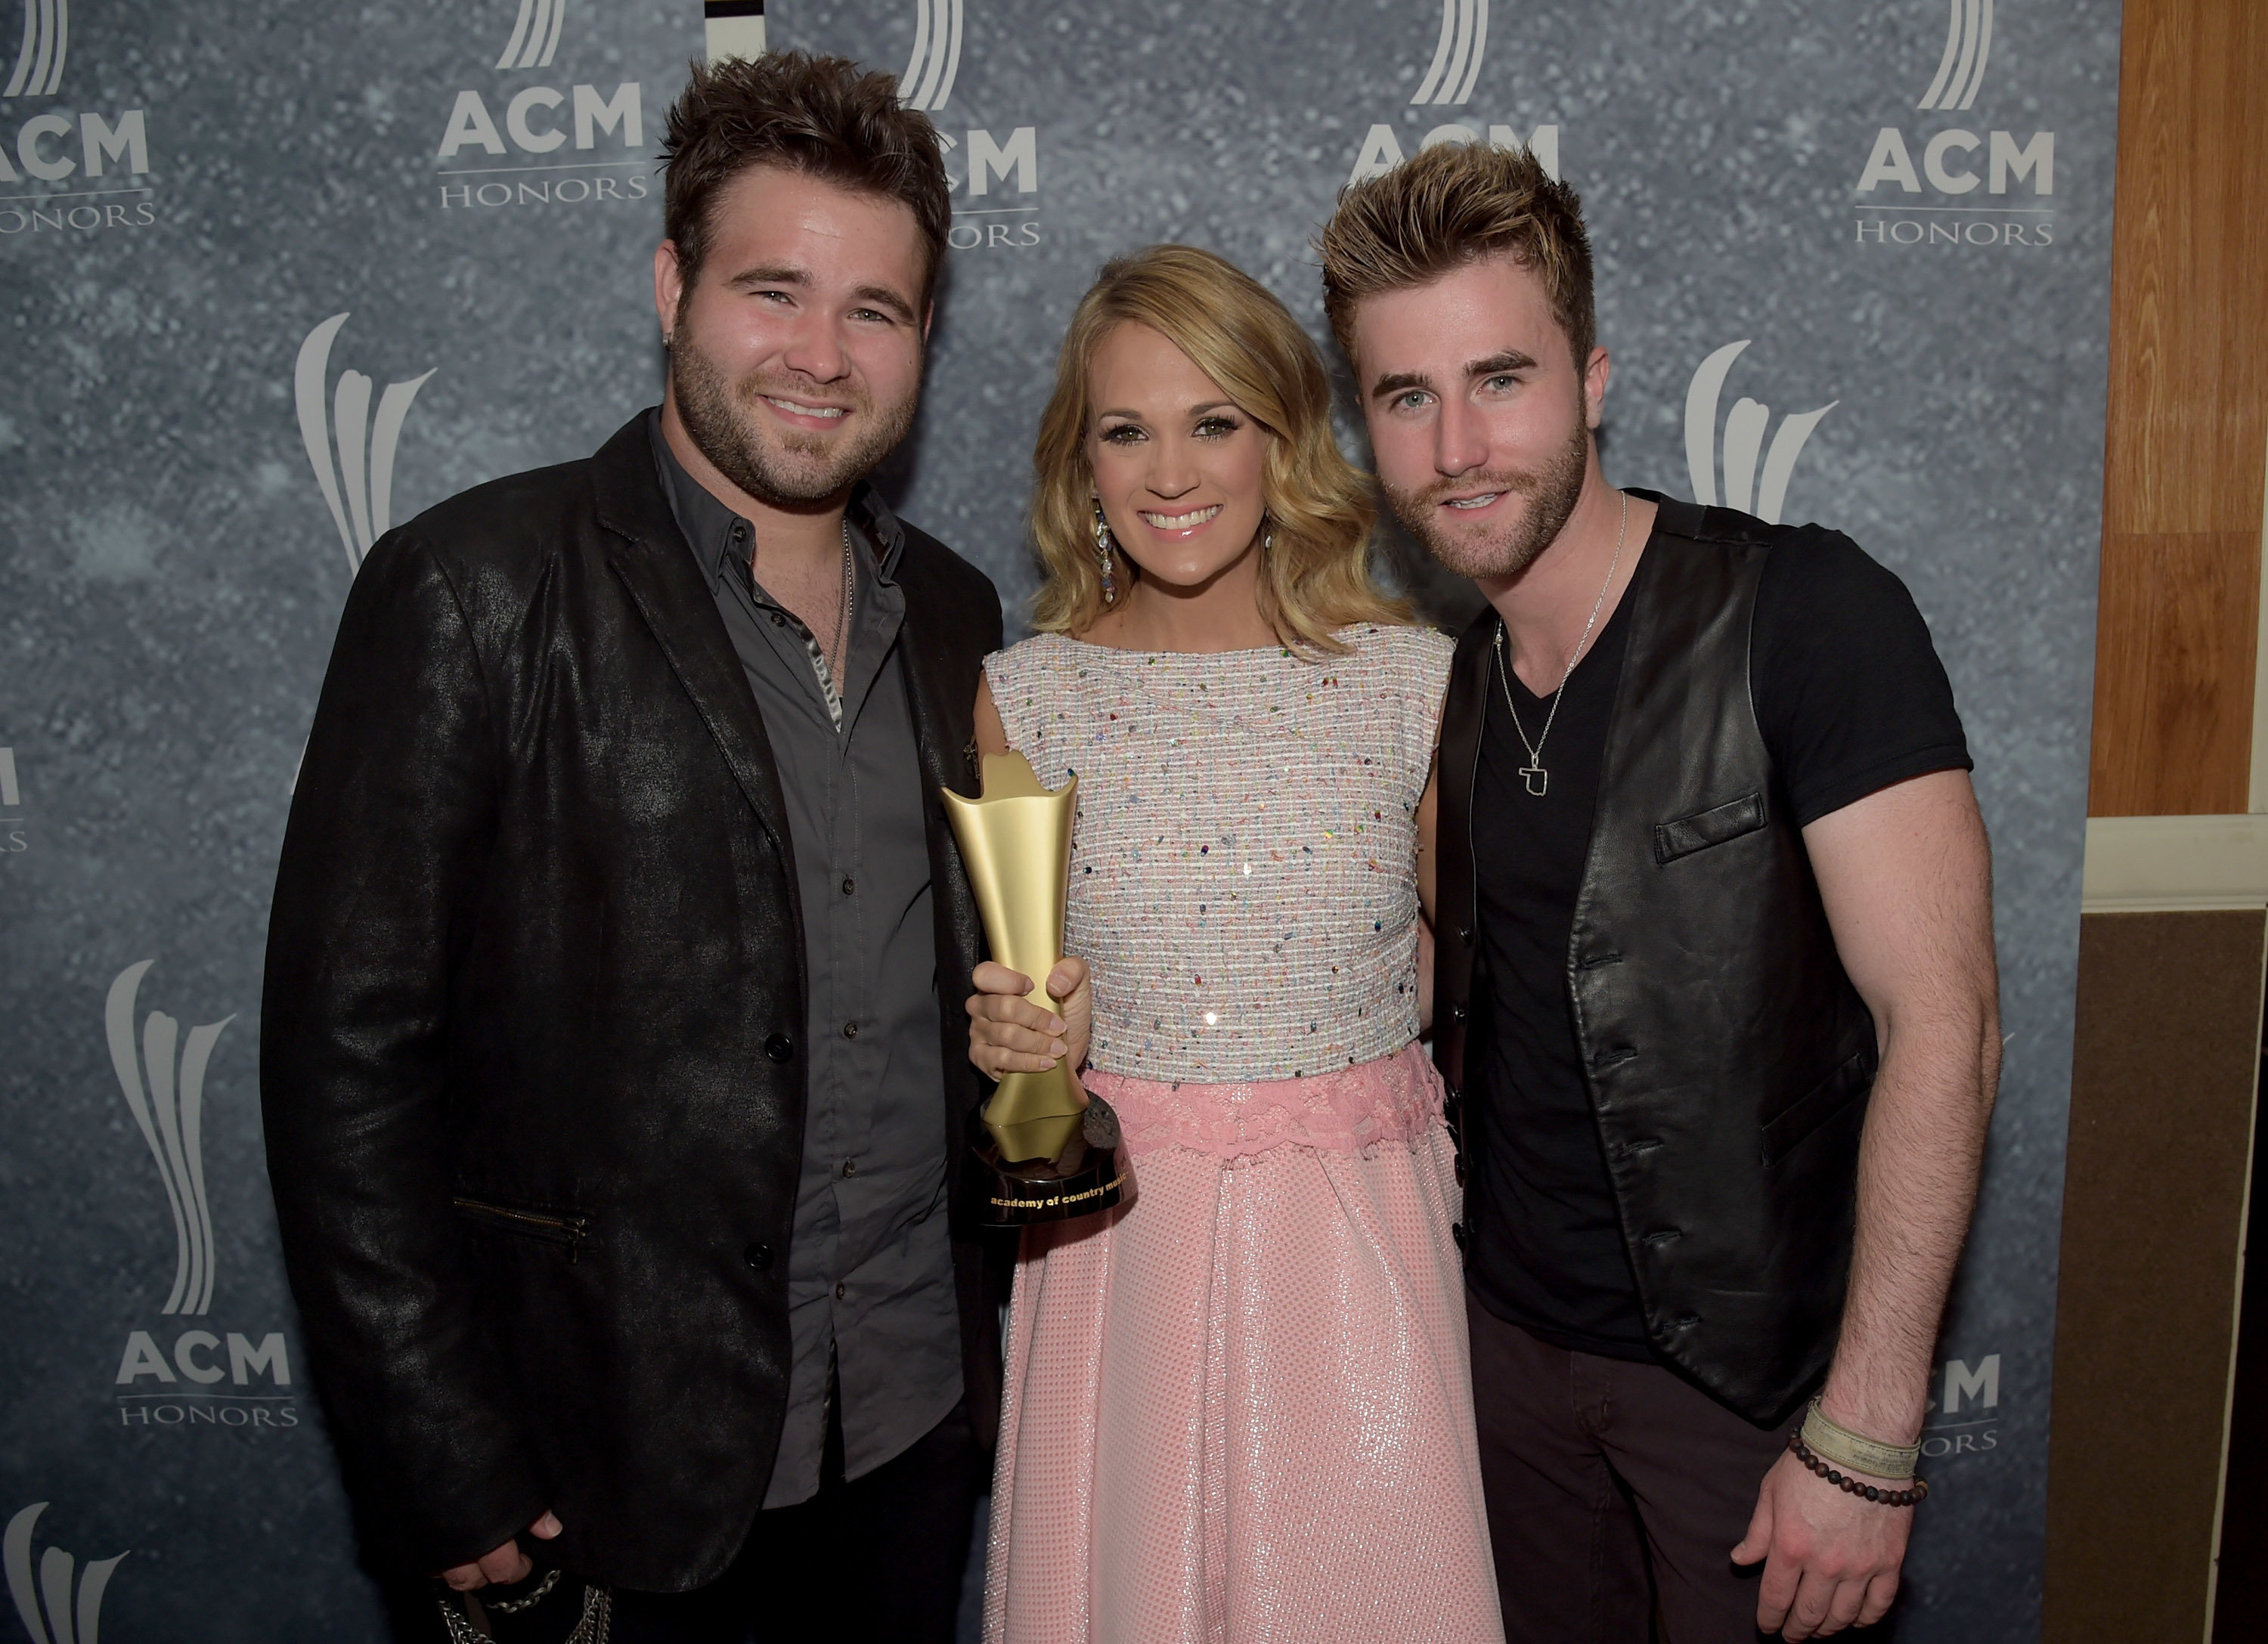 Zach Swon, Carrie Underwood and Colton Swon attend the 8th Annual ACM Honors at Ryman Auditorium in Nashville on Sept, 9, 2014.